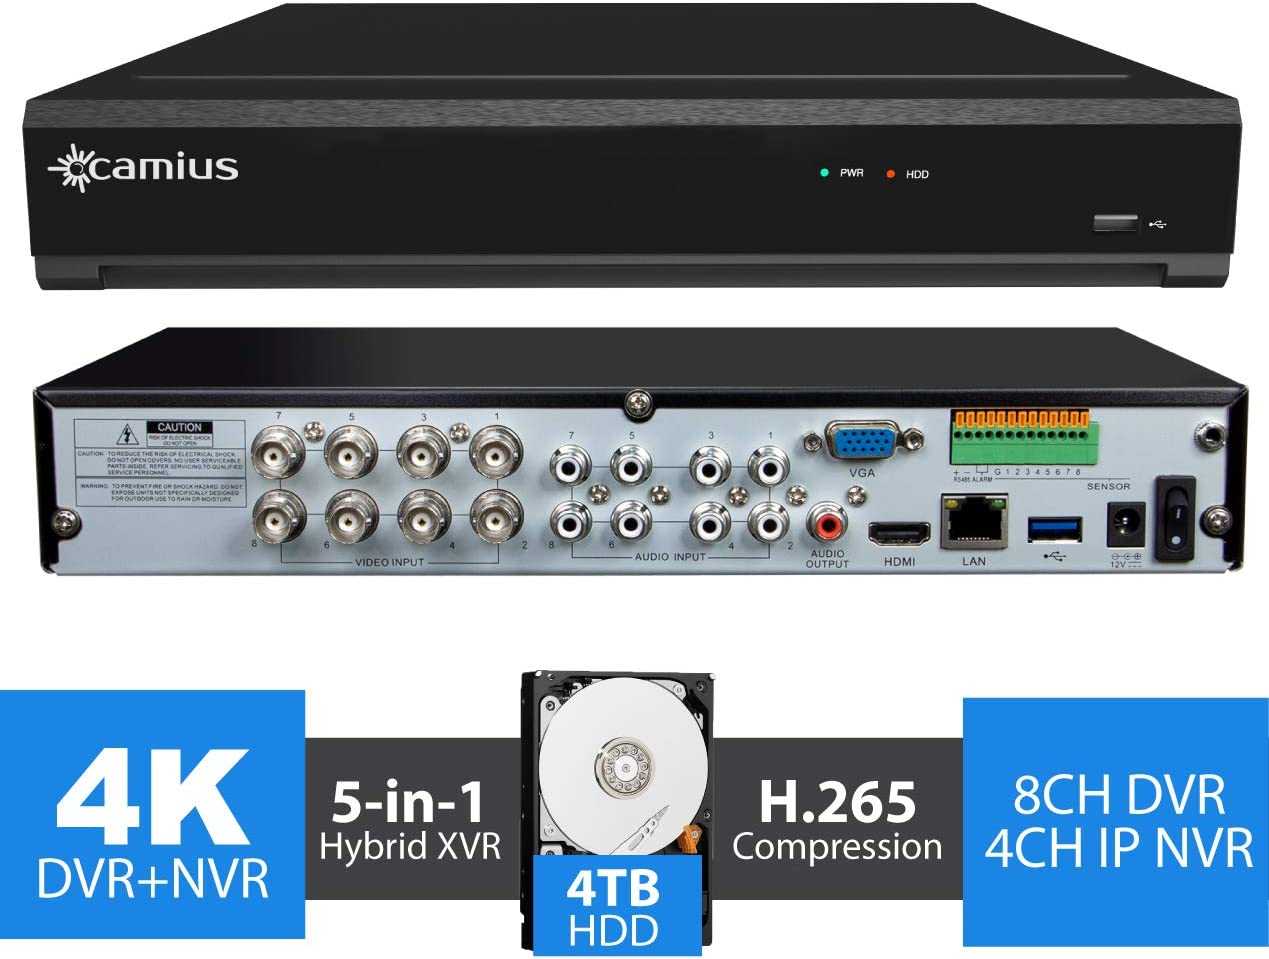 Camius 4K 8MP Hybrid 12 Channel Security DVR NVR with Hard Drive 4TB – Analog 8CH DVR 4CH IP NVR – 4K HDMI, VGA, SPOT-Output, Audio, Alarm IO – Sold Without Cameras